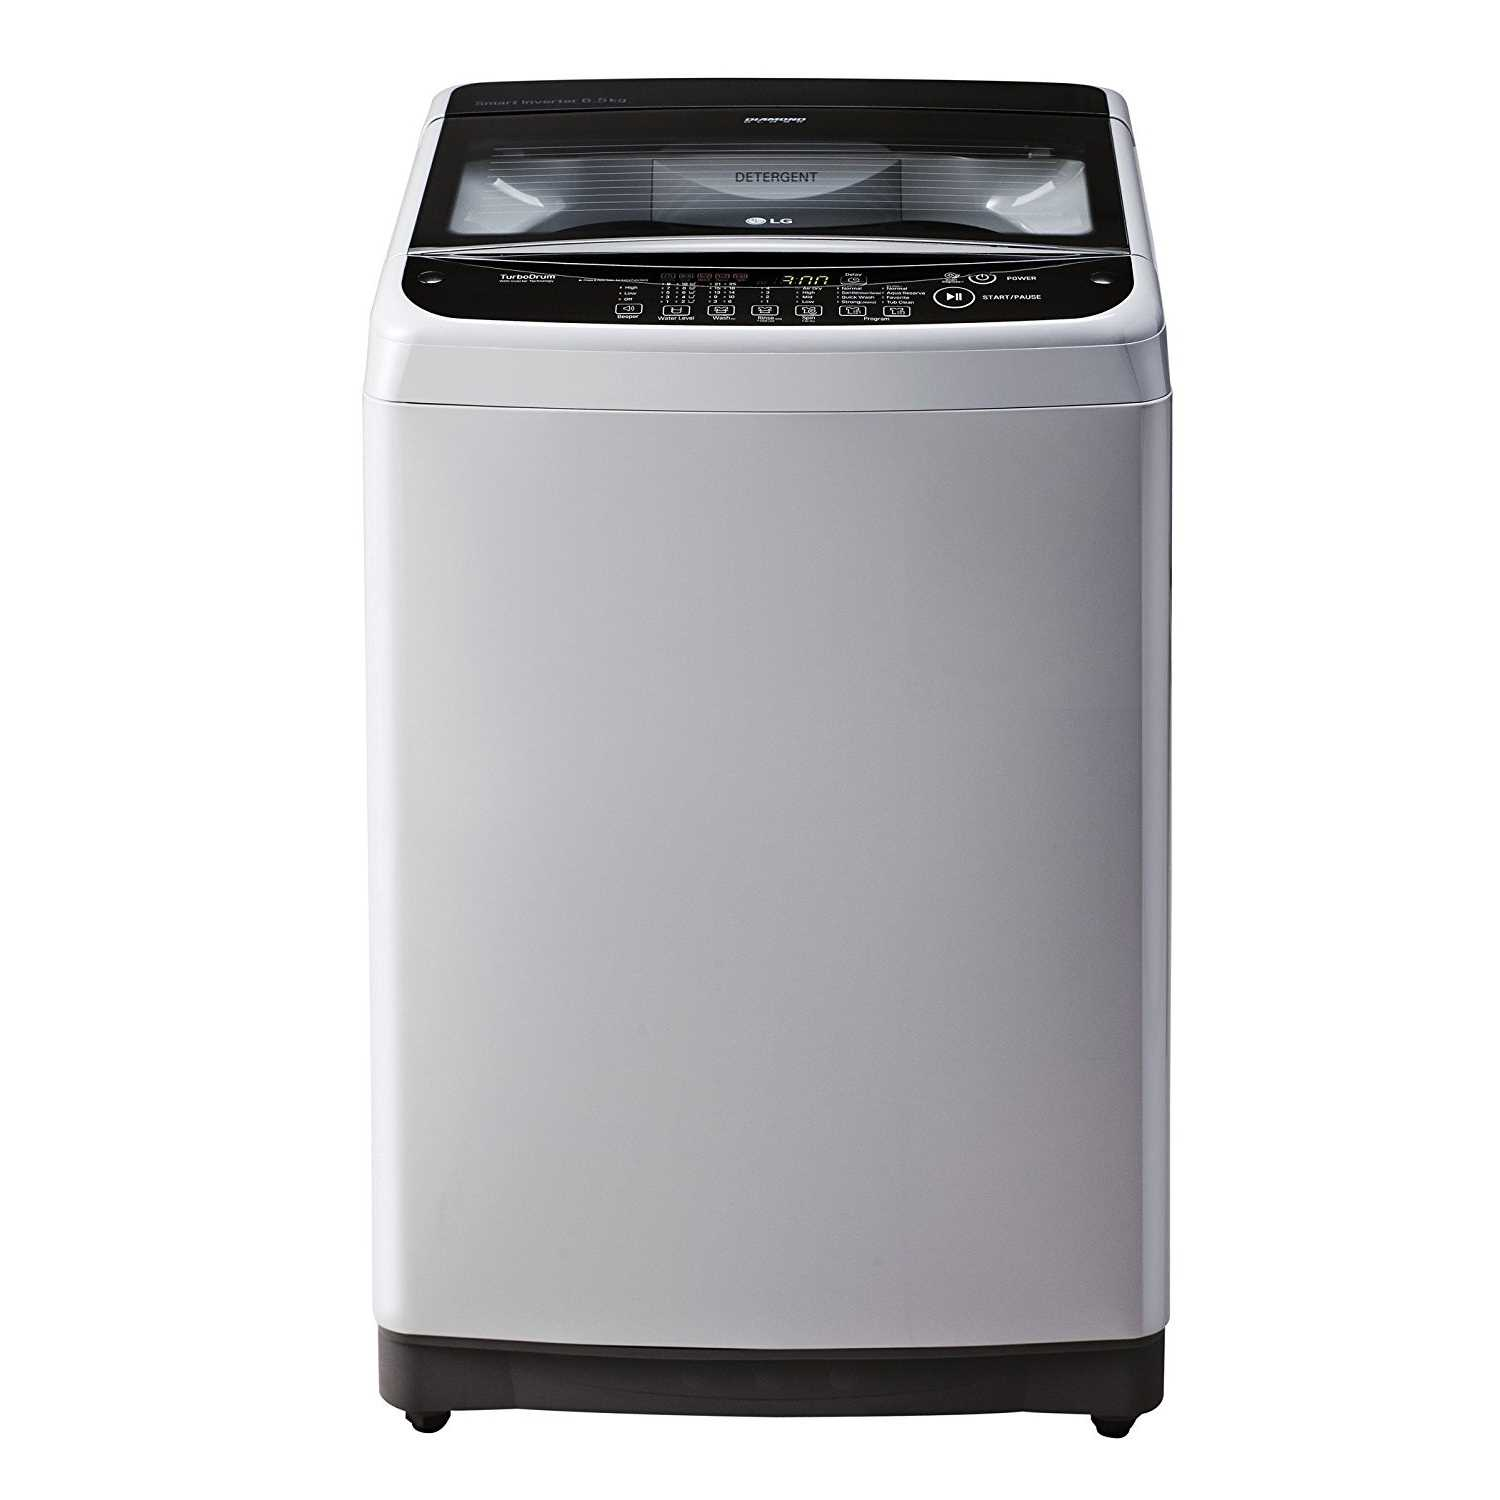 LG T7581NEDLJ 6.5 Kg Fully Automatic Top Loading Washing Machine